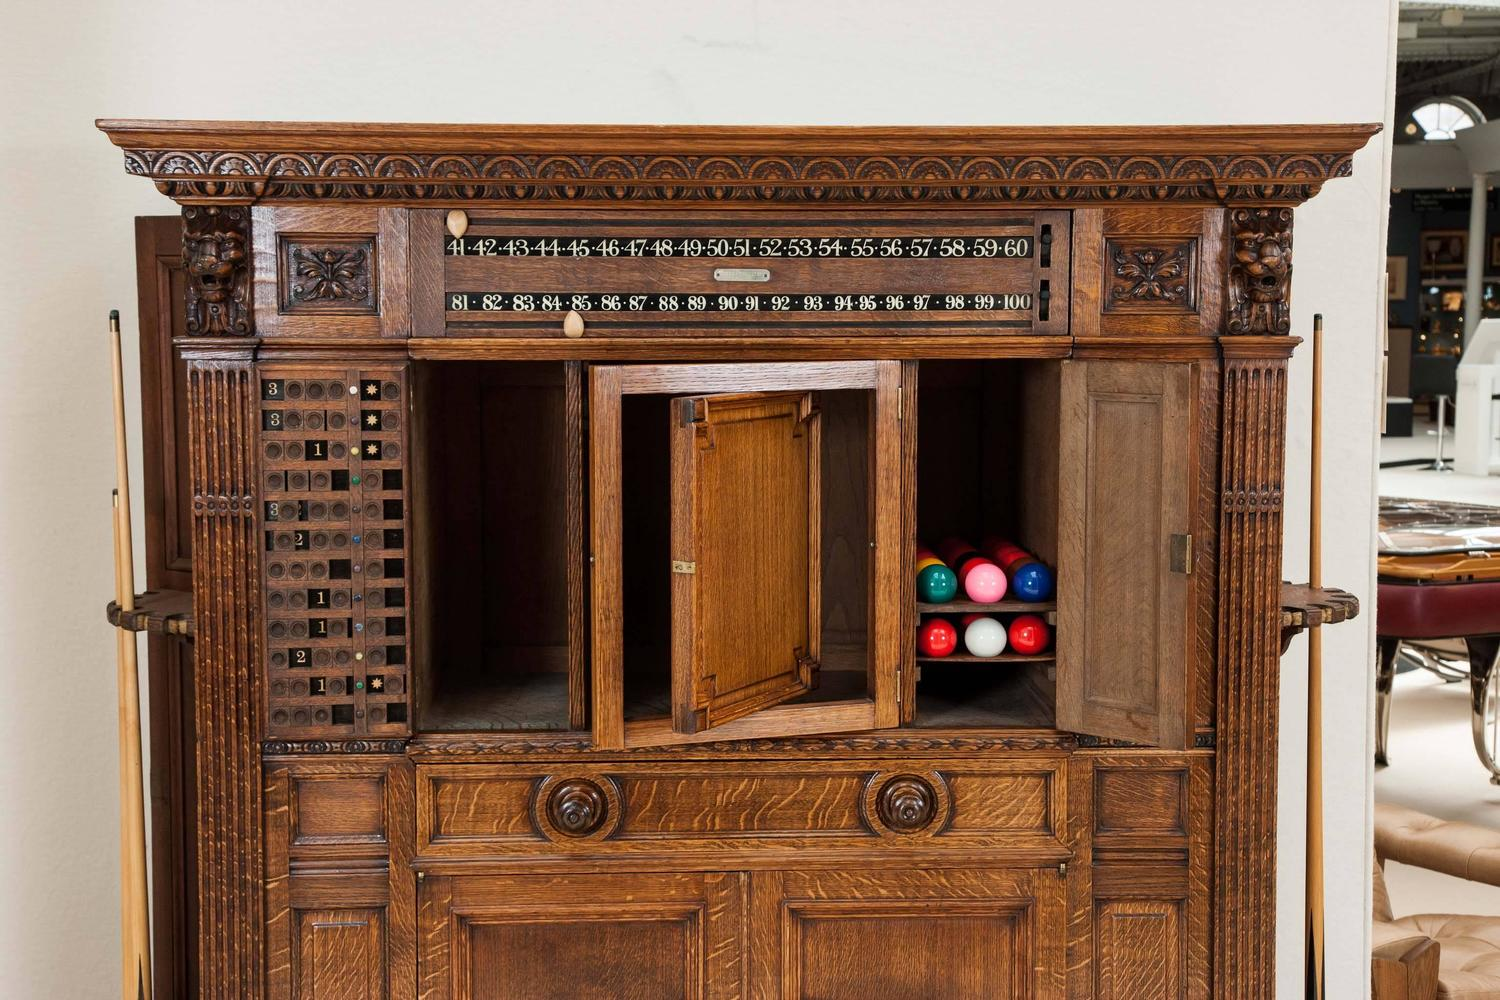 Kitchen Cabinets For Sale London Victorian Carved Oak Billiards Cabinet By Thurston And Co